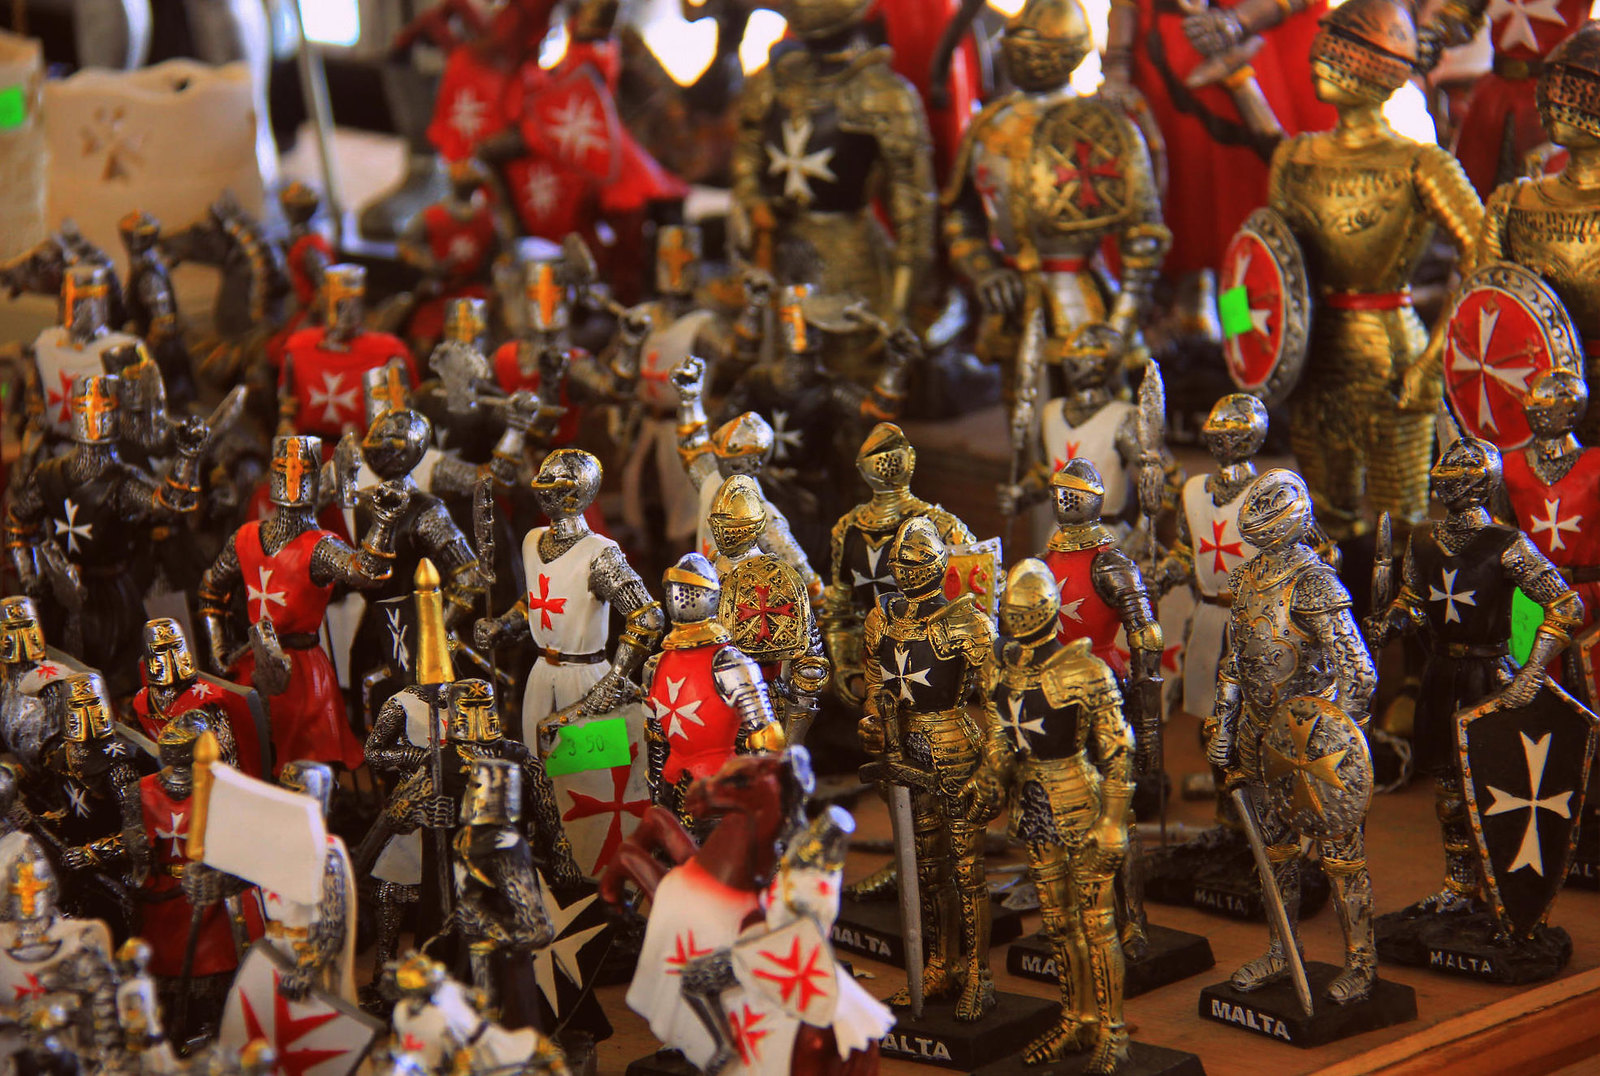 Malta Knights are popular souvenirs of Malta